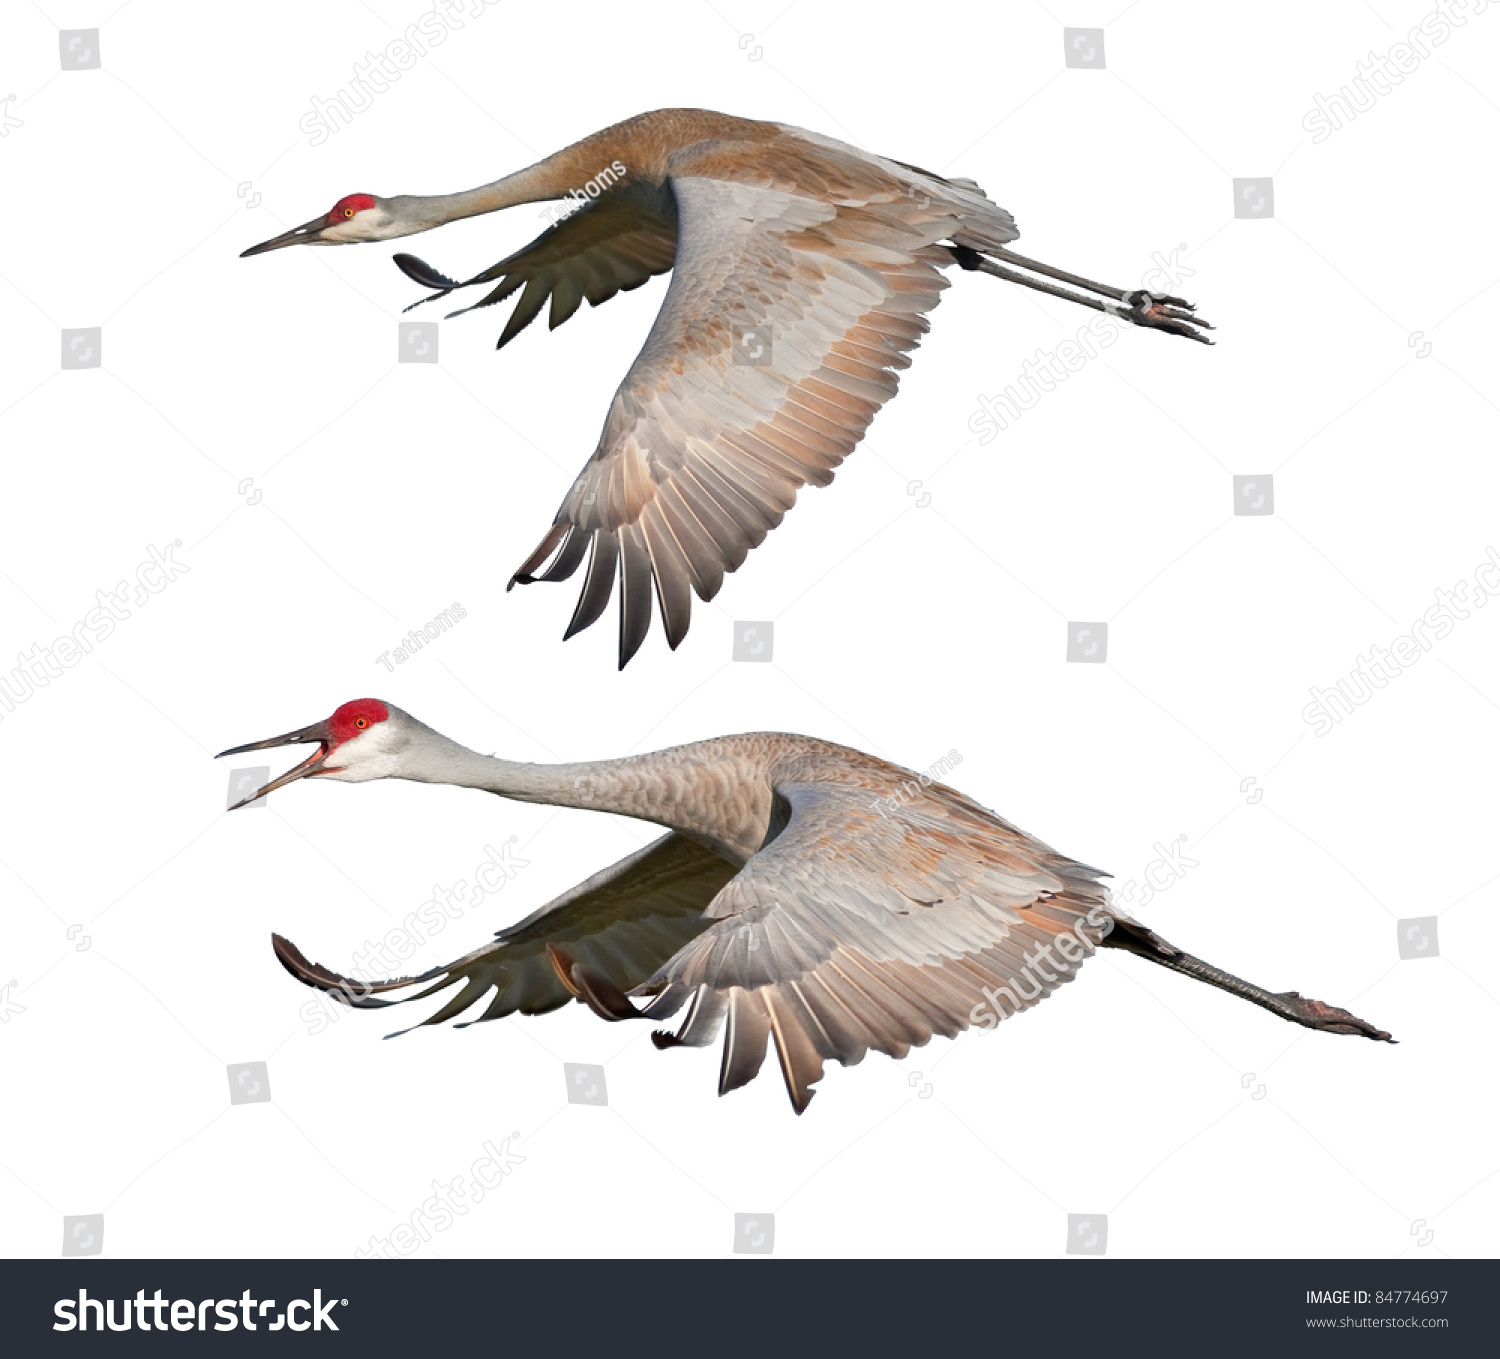 Two Sandhill Cranes, in flight, isolated on white. Latin name - Grus cannadensis.